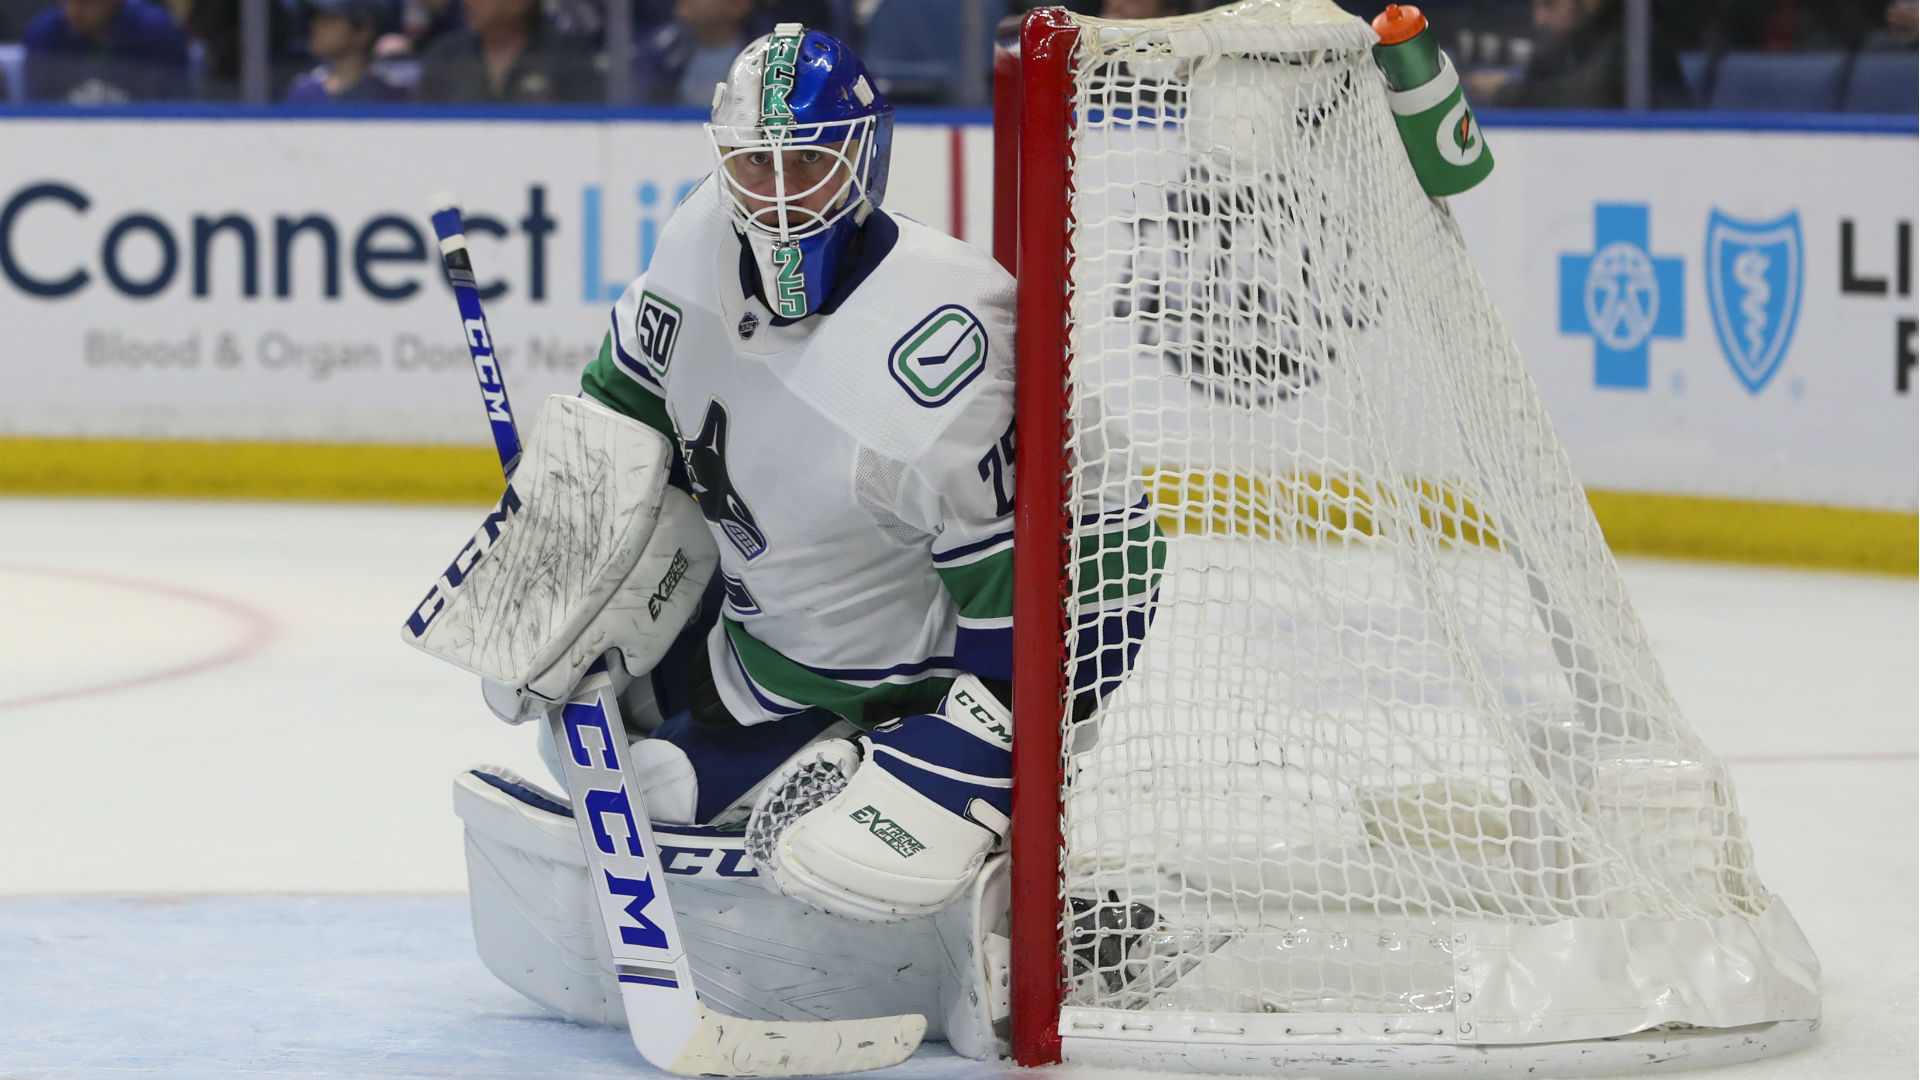 Vancouver Canucks Jacob Markstrom Makes Highlight Reel Save In Win Over San Jose Sharks Sporting News